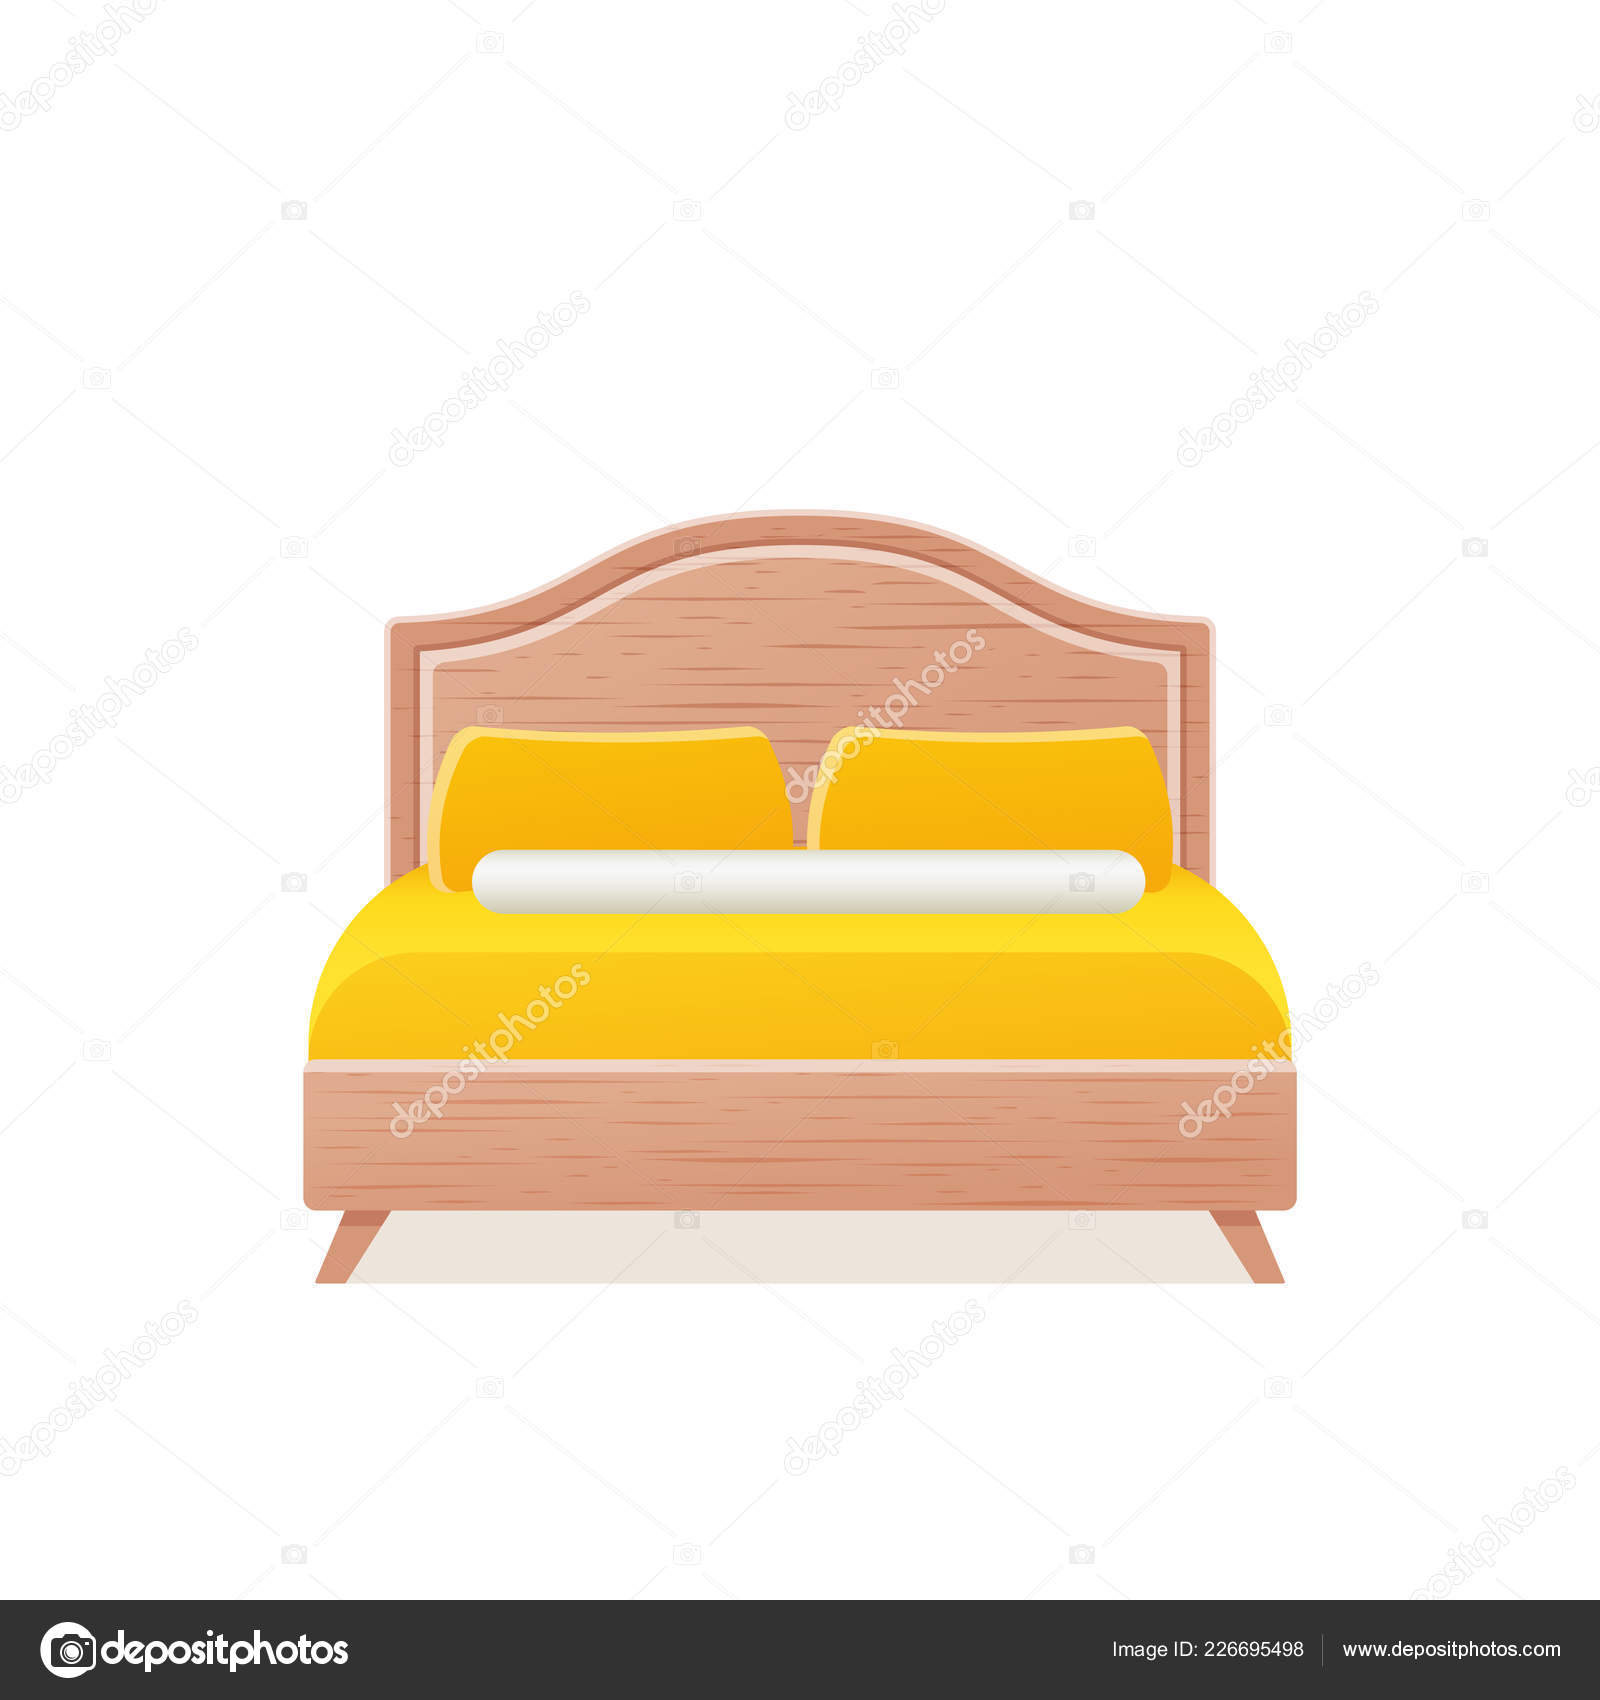 Bed Vector Double Wooden Bed Flat Design Bedroom Hotel Room Stock